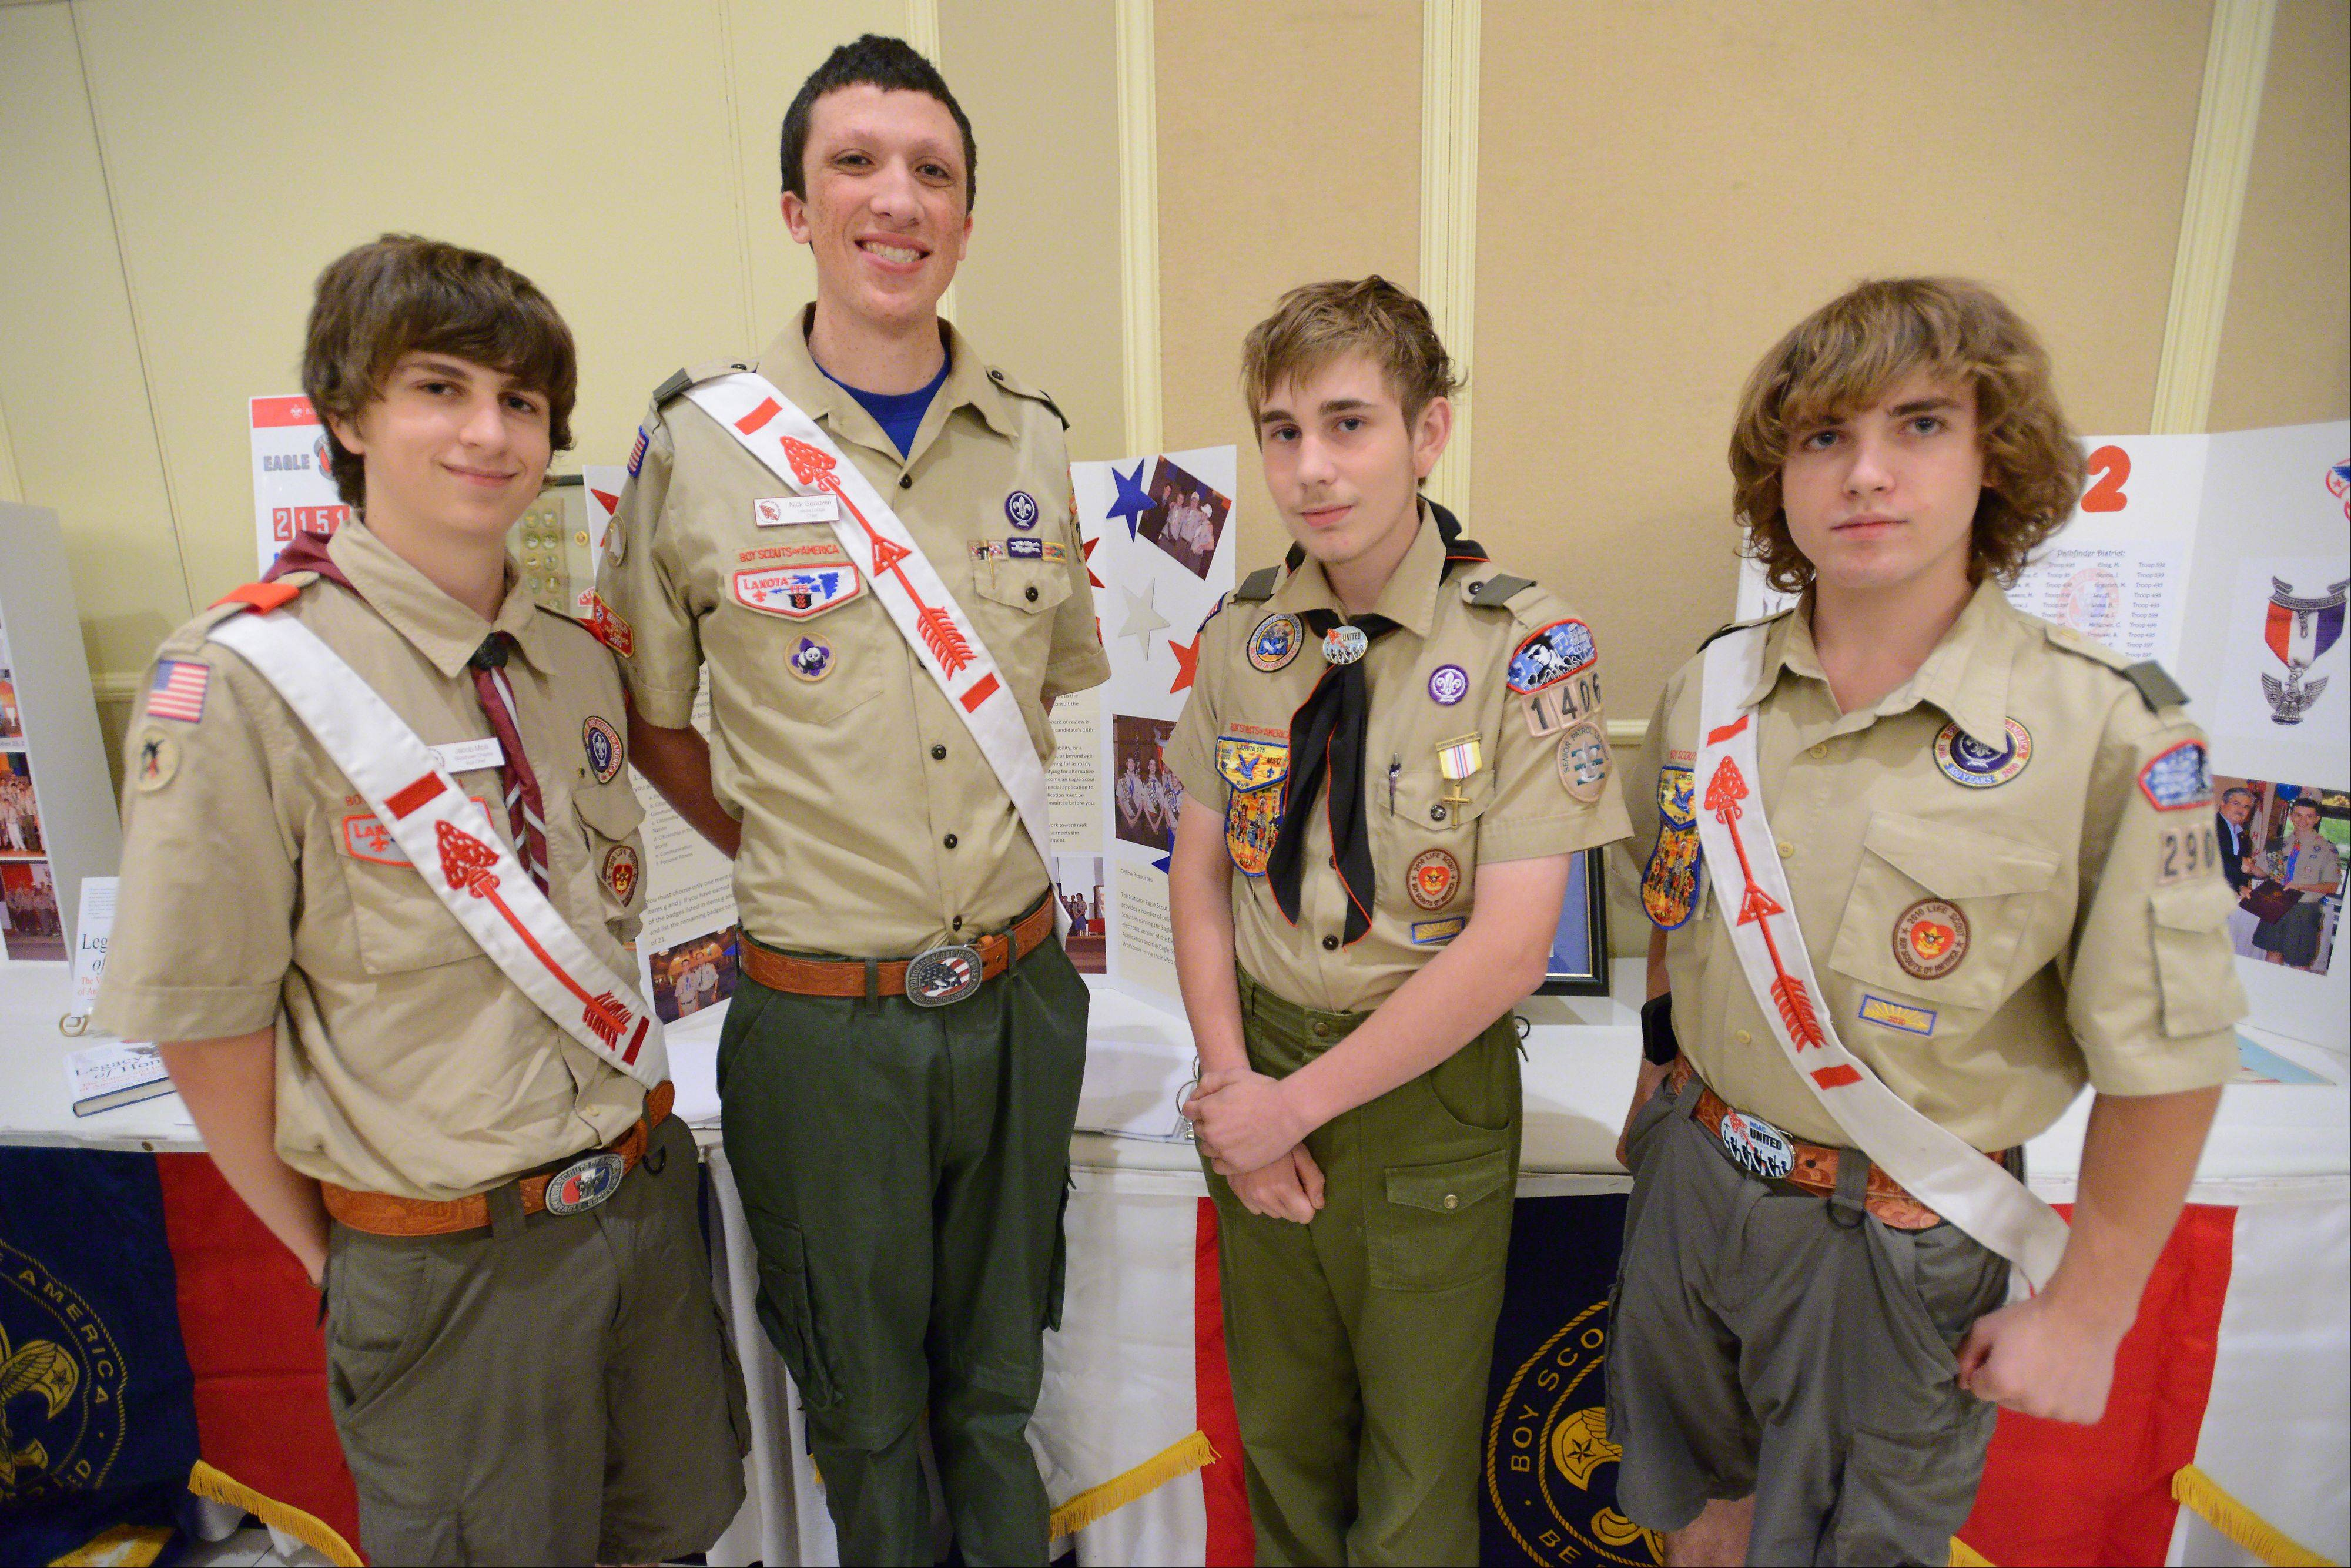 Eagle Scout Jacob Molli, 18, from Schiller Park Troop 16, Eagle Scout Nick Goodwin, 18, of Morton Grove Troop 228, Life Scout Richard Biggio, 15, of Park Ridge Troop 76, and Life Scout Drew Debish, 17, of Hoffman Estates Troop 290 attend Friday's banquet in Palatine.